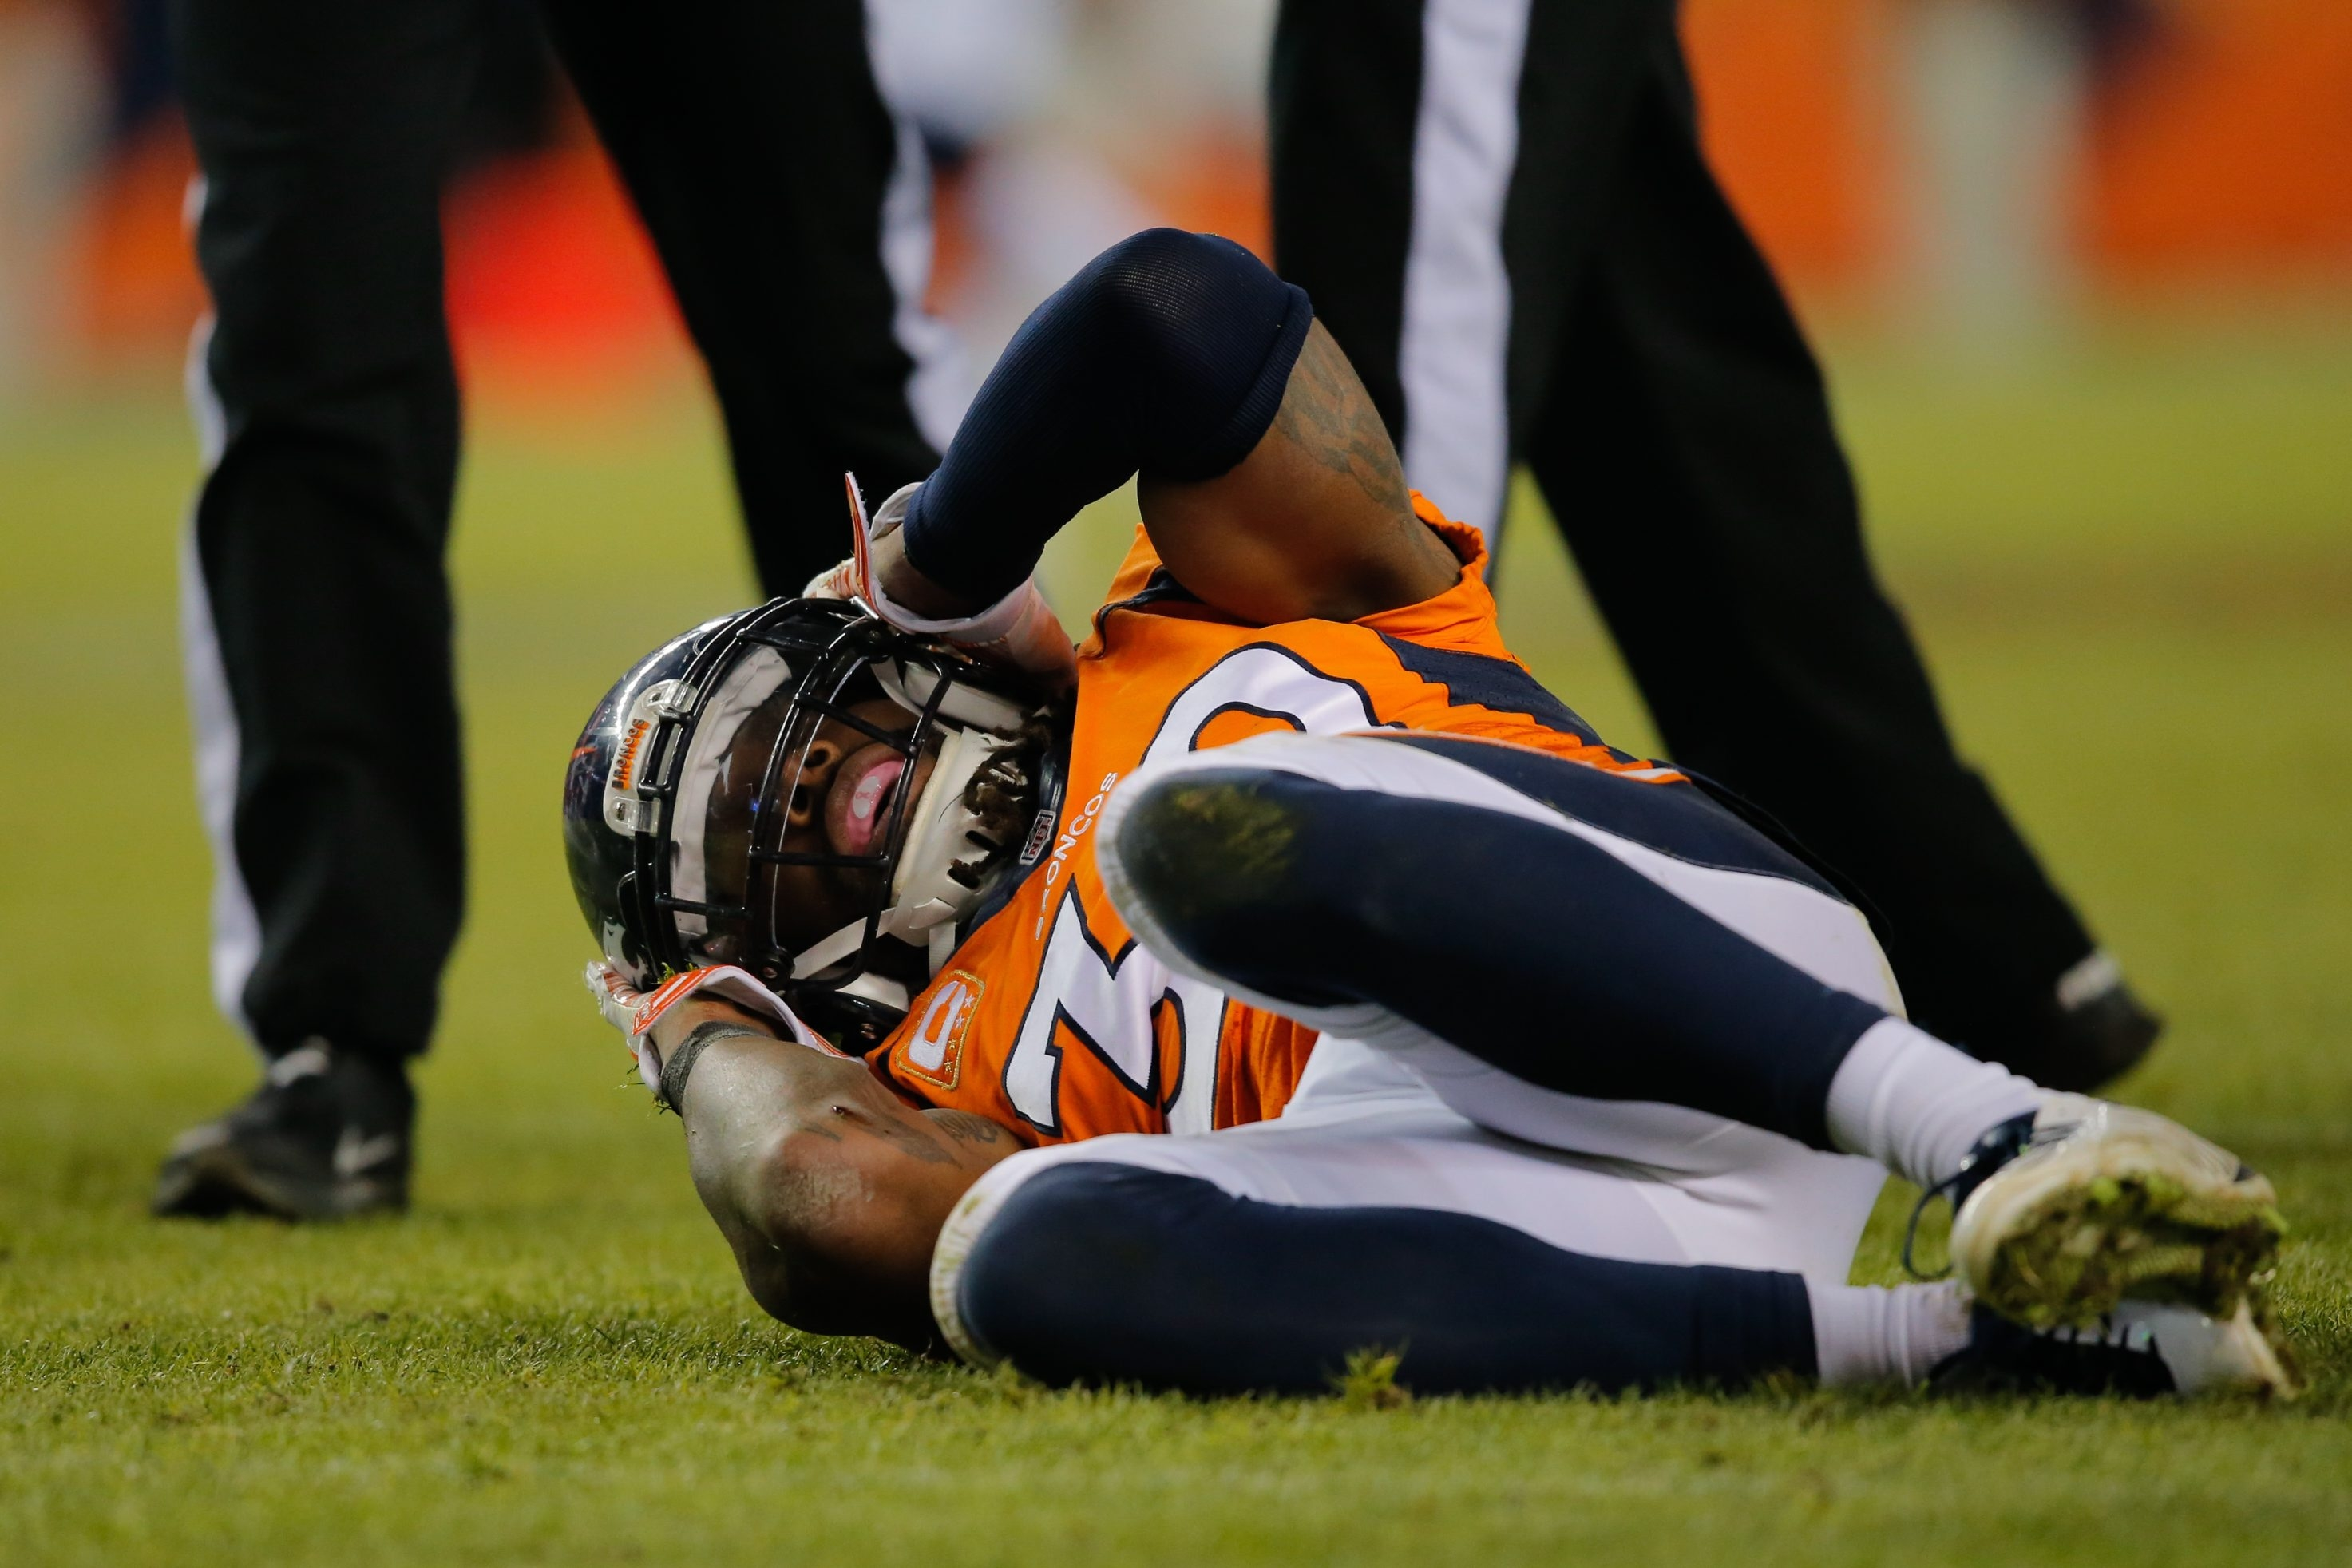 Strong safety David Bruton of the Denver Broncos lies on the ground in pain after a play that would force him out of the game with a reported concussion in 2014.